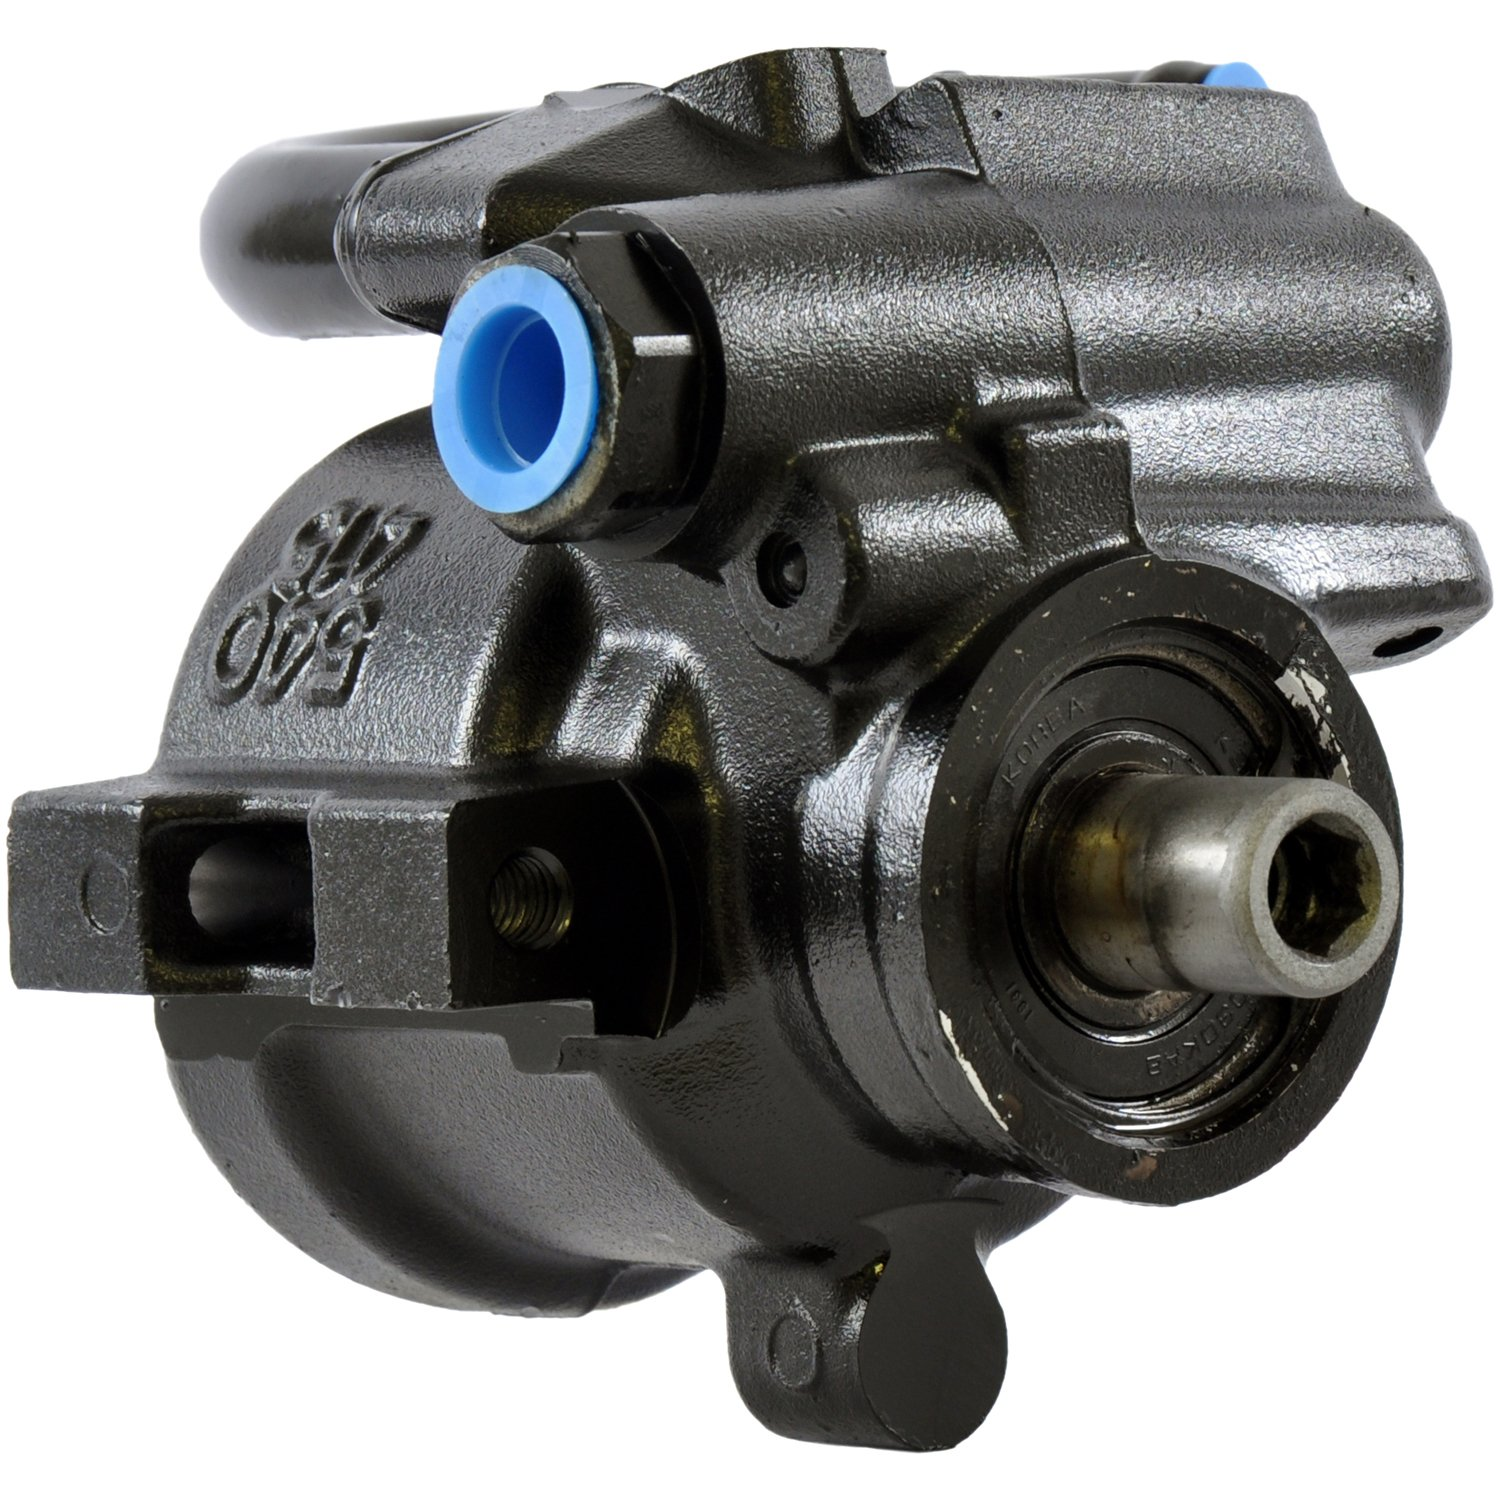 ACDelco 36P0220 Professional Power Steering Pump, Remanufactured